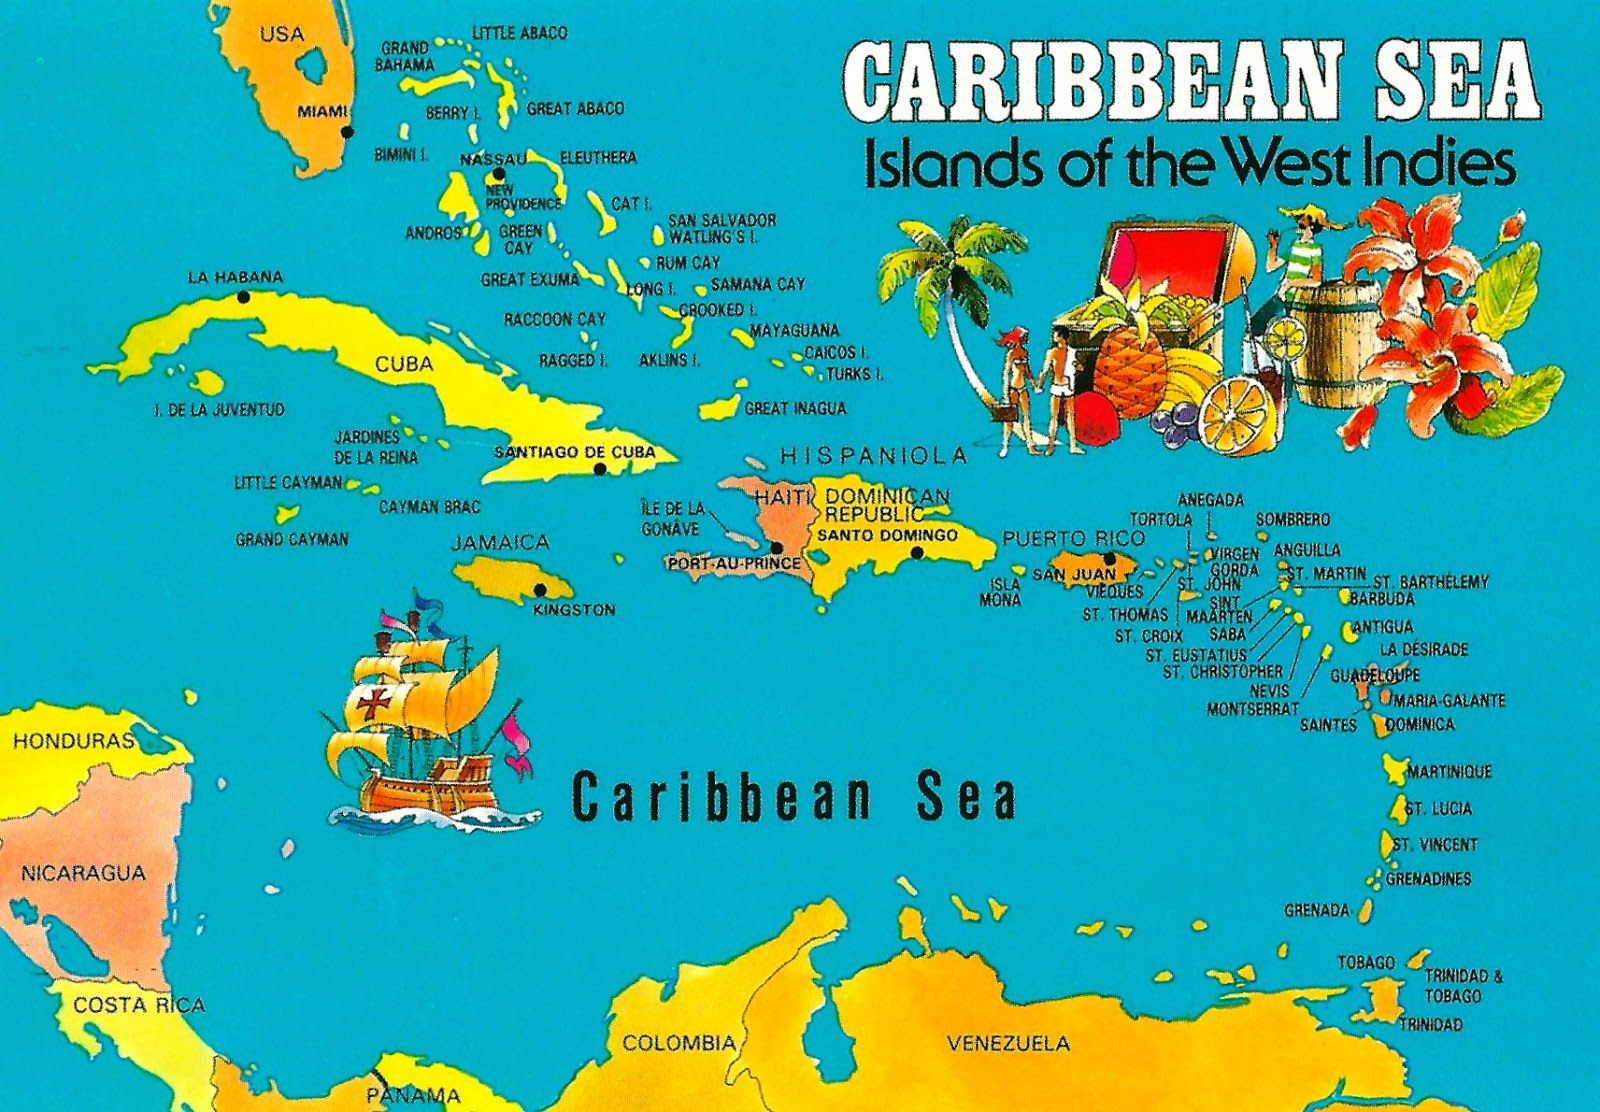 Caribbean Sea Islands Of The West Indies This Map Postcard - Jamaica map caribbean sea